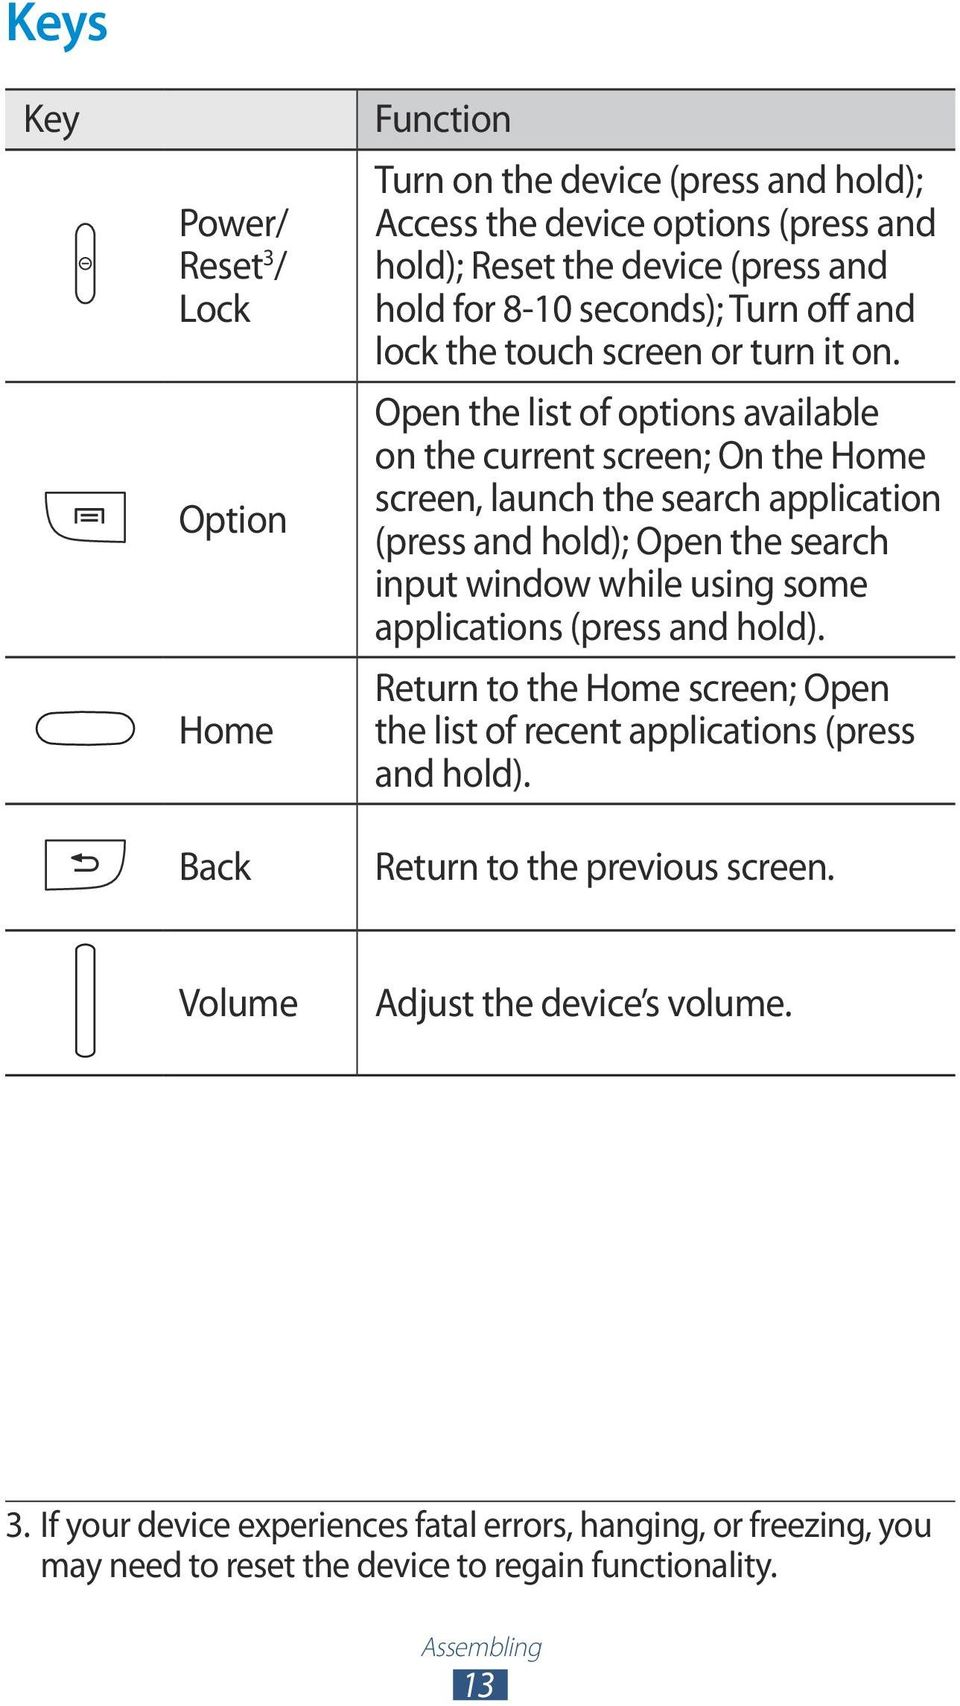 Open the list of options available on the current screen; On the Home screen, launch the search application (press and hold); Open the search input window while using some